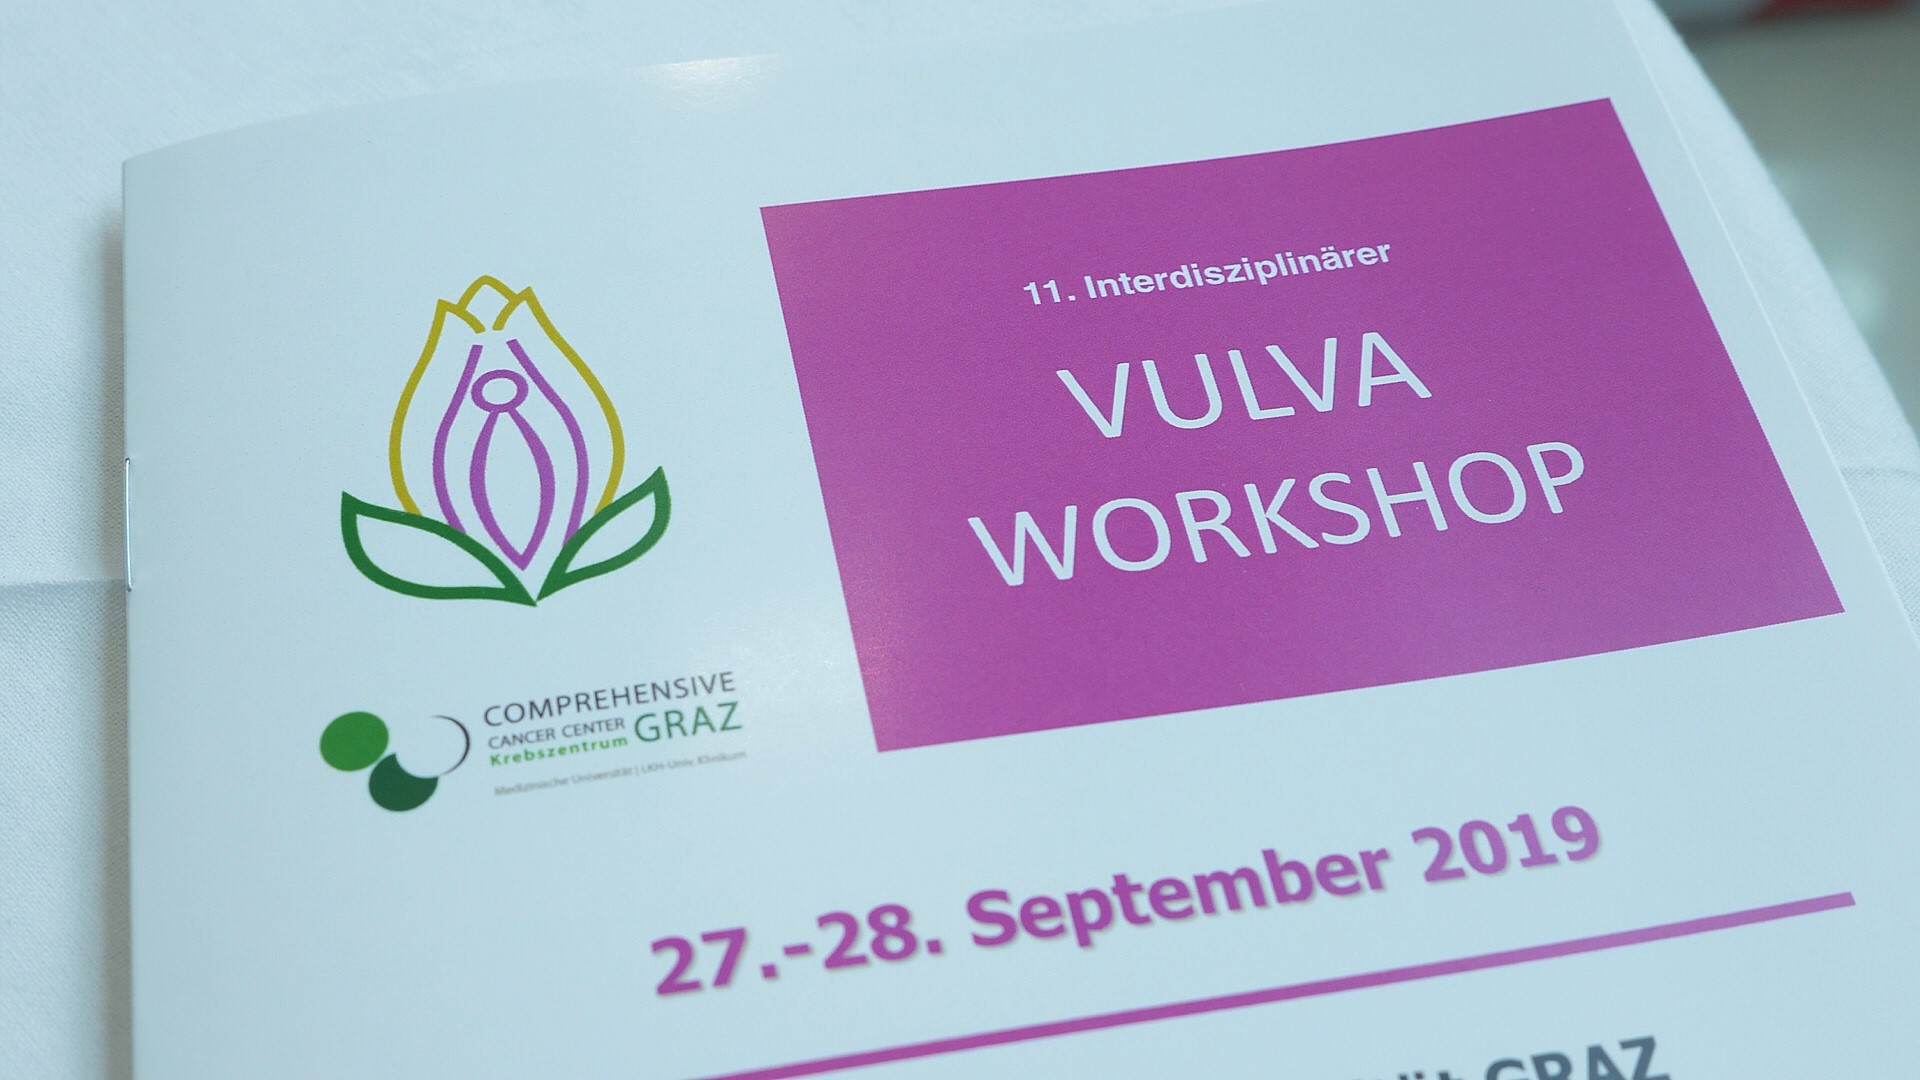 11. Interdisziplinärer Vulvaworkshop in Graz 2019 - Eventvideo